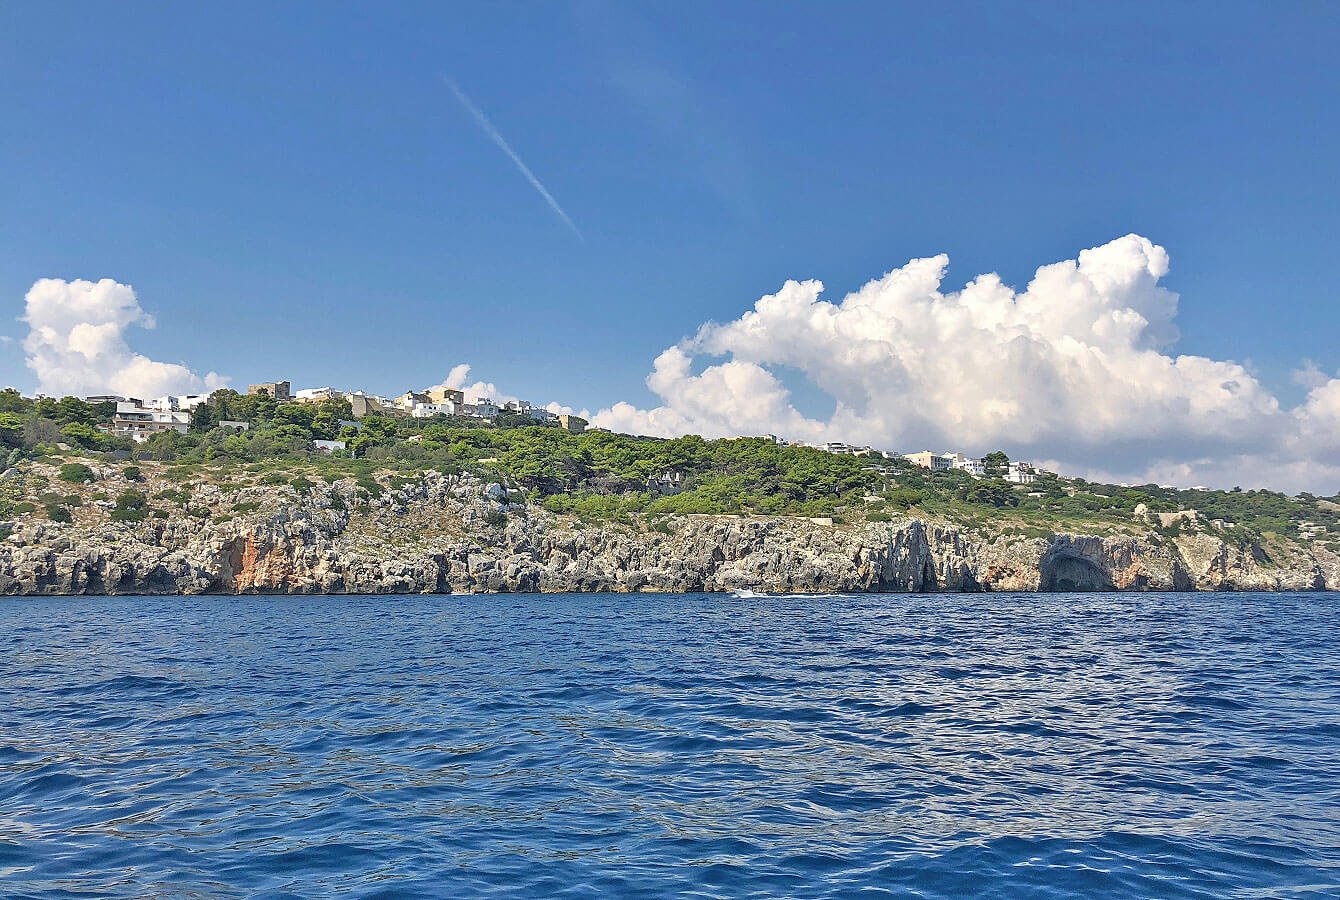 Boat cruising along the Adriatic Sea